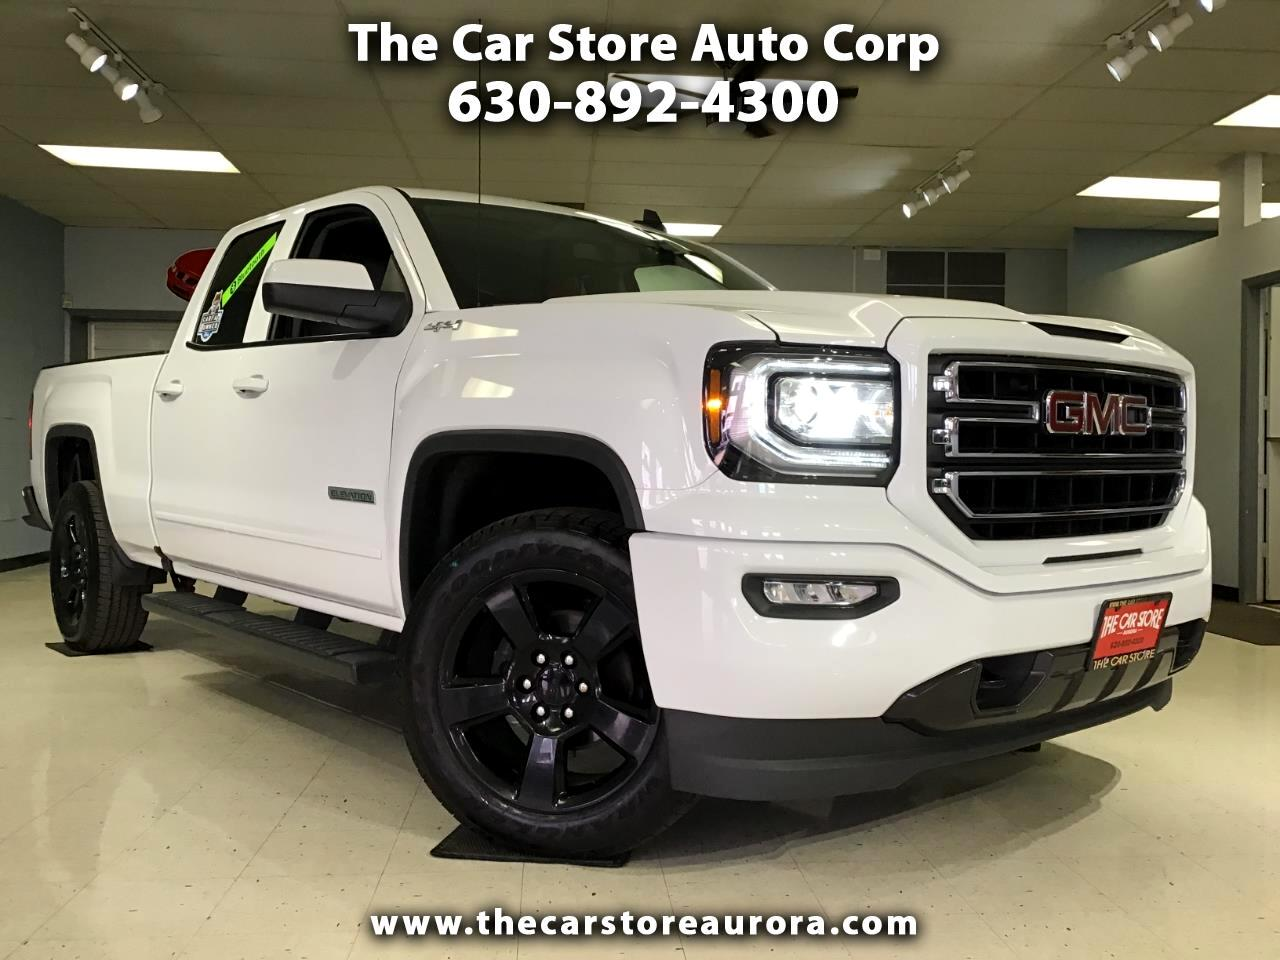 2016 GMC Sierra 1500 Double Cab Elevation 4WD